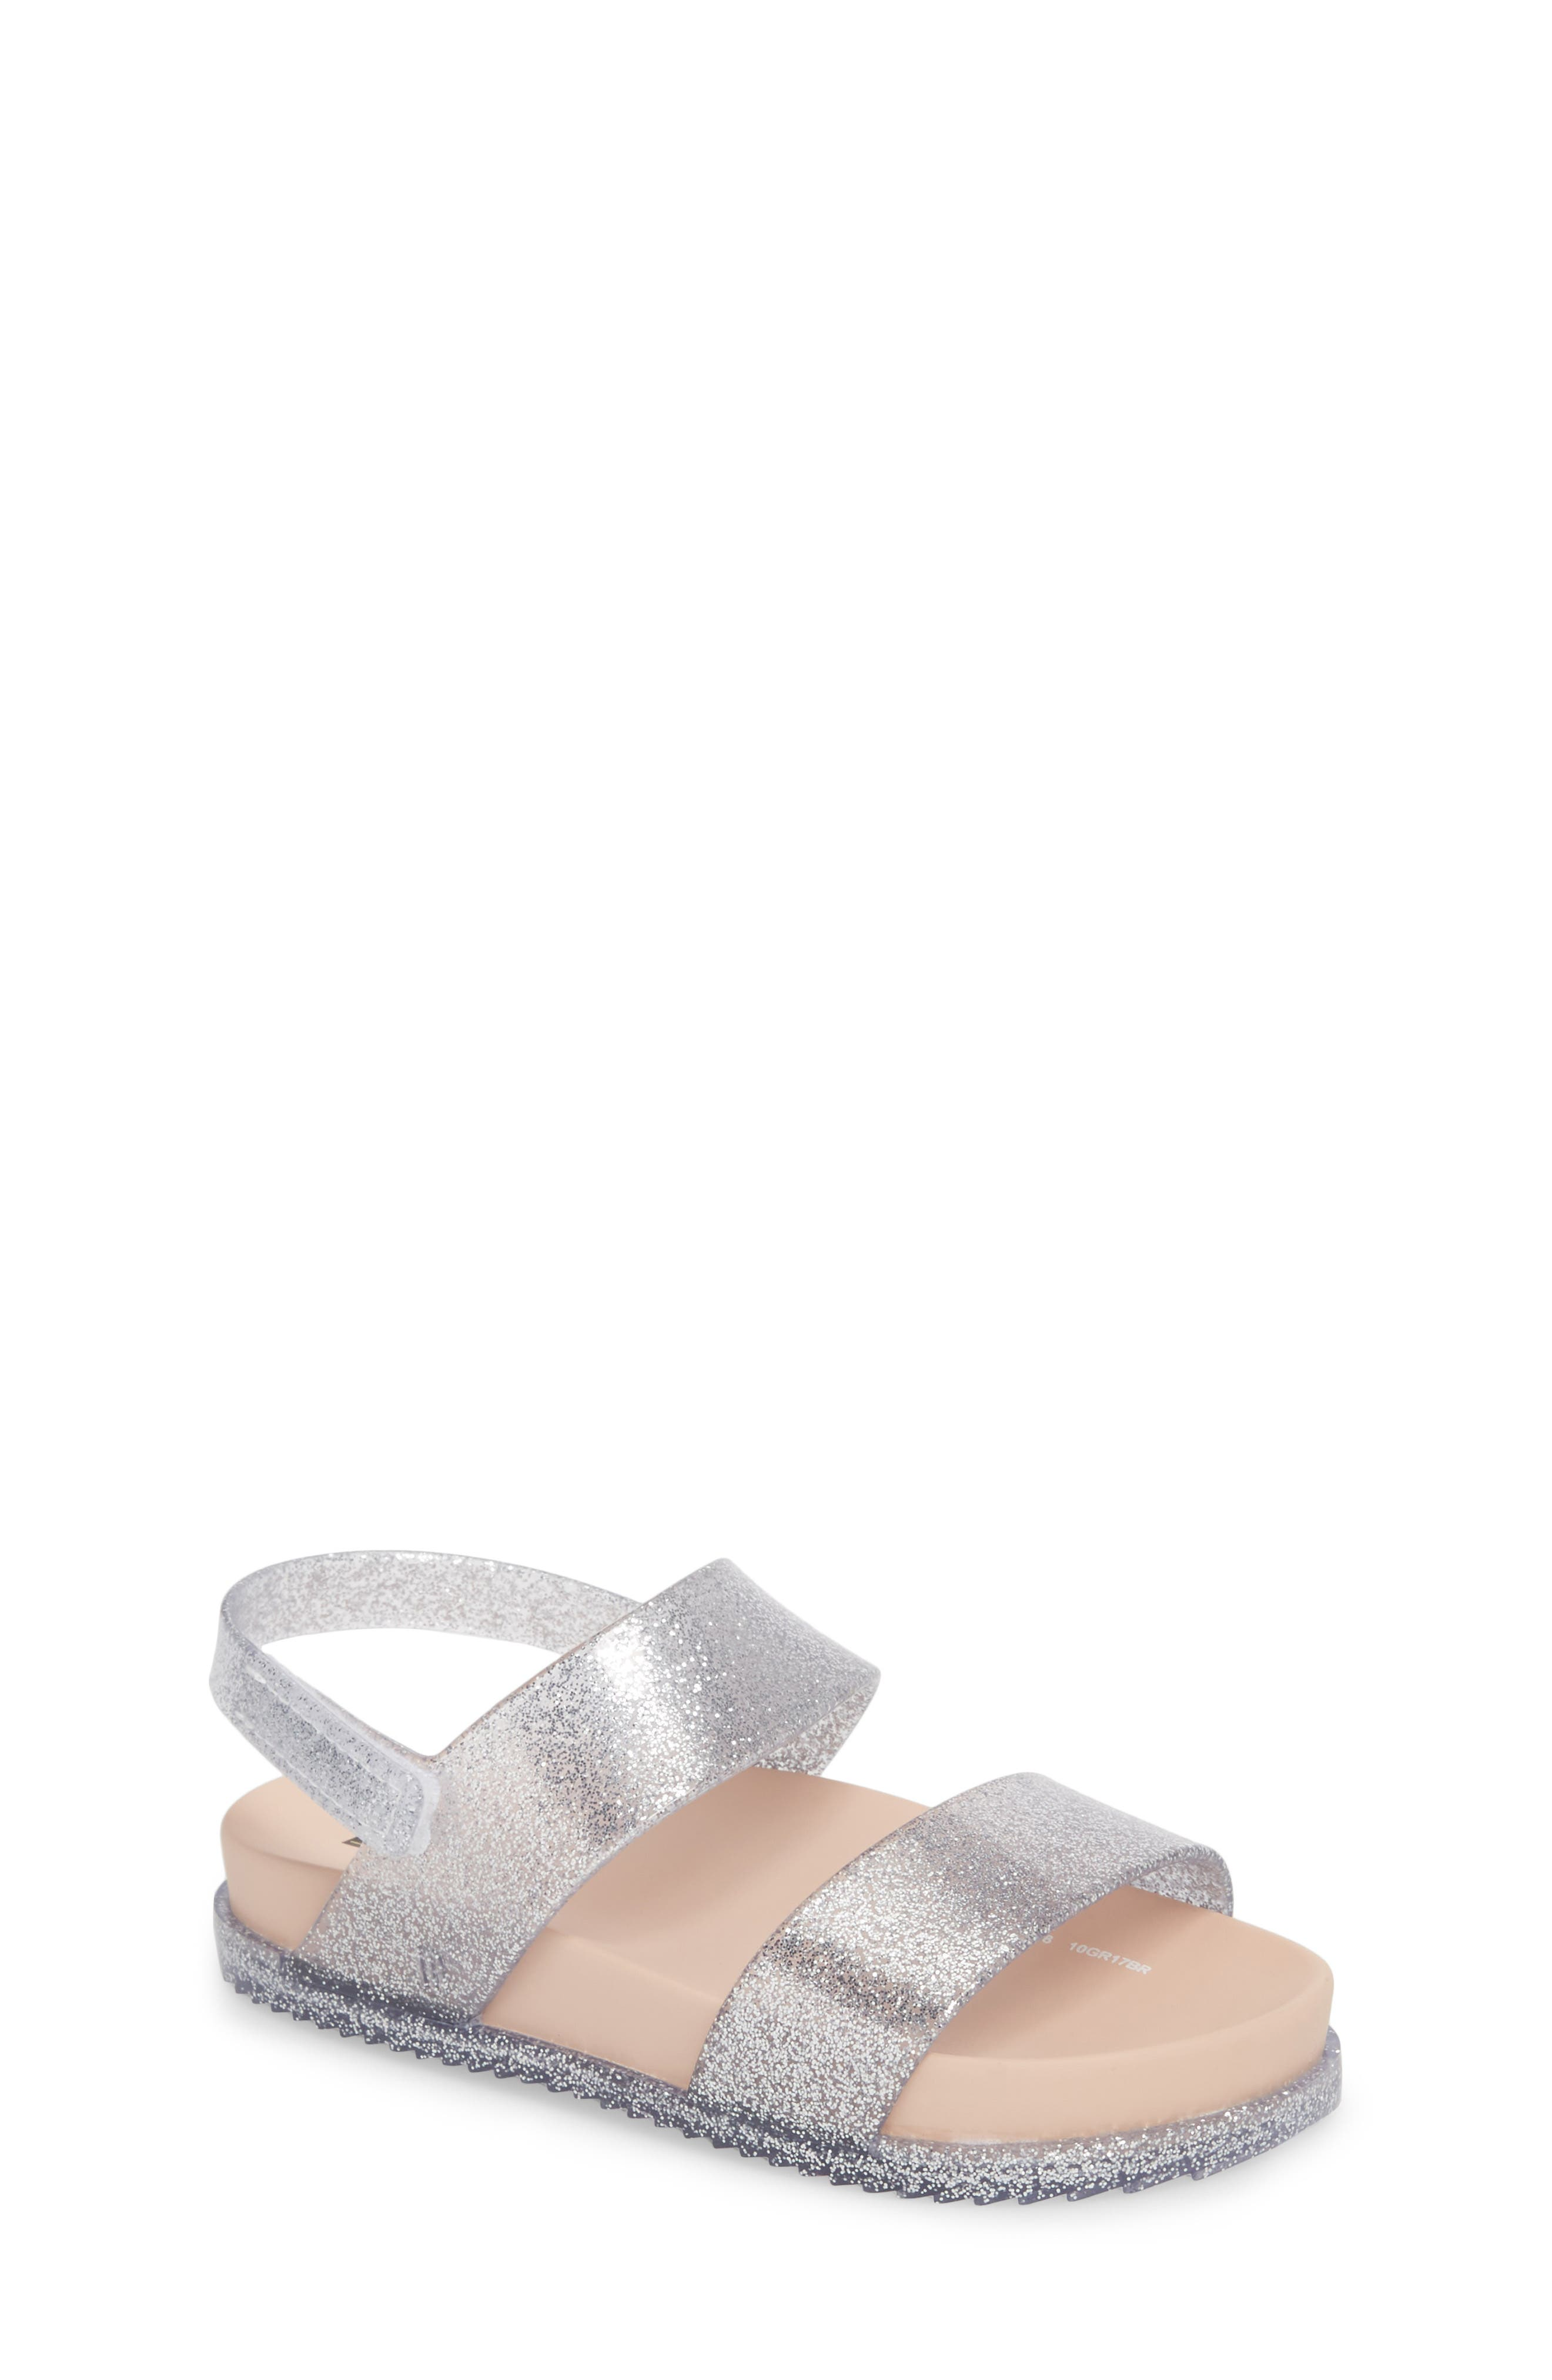 Glittery Cosmic Sandal,                         Main,                         color, Pink Silver Sparkle